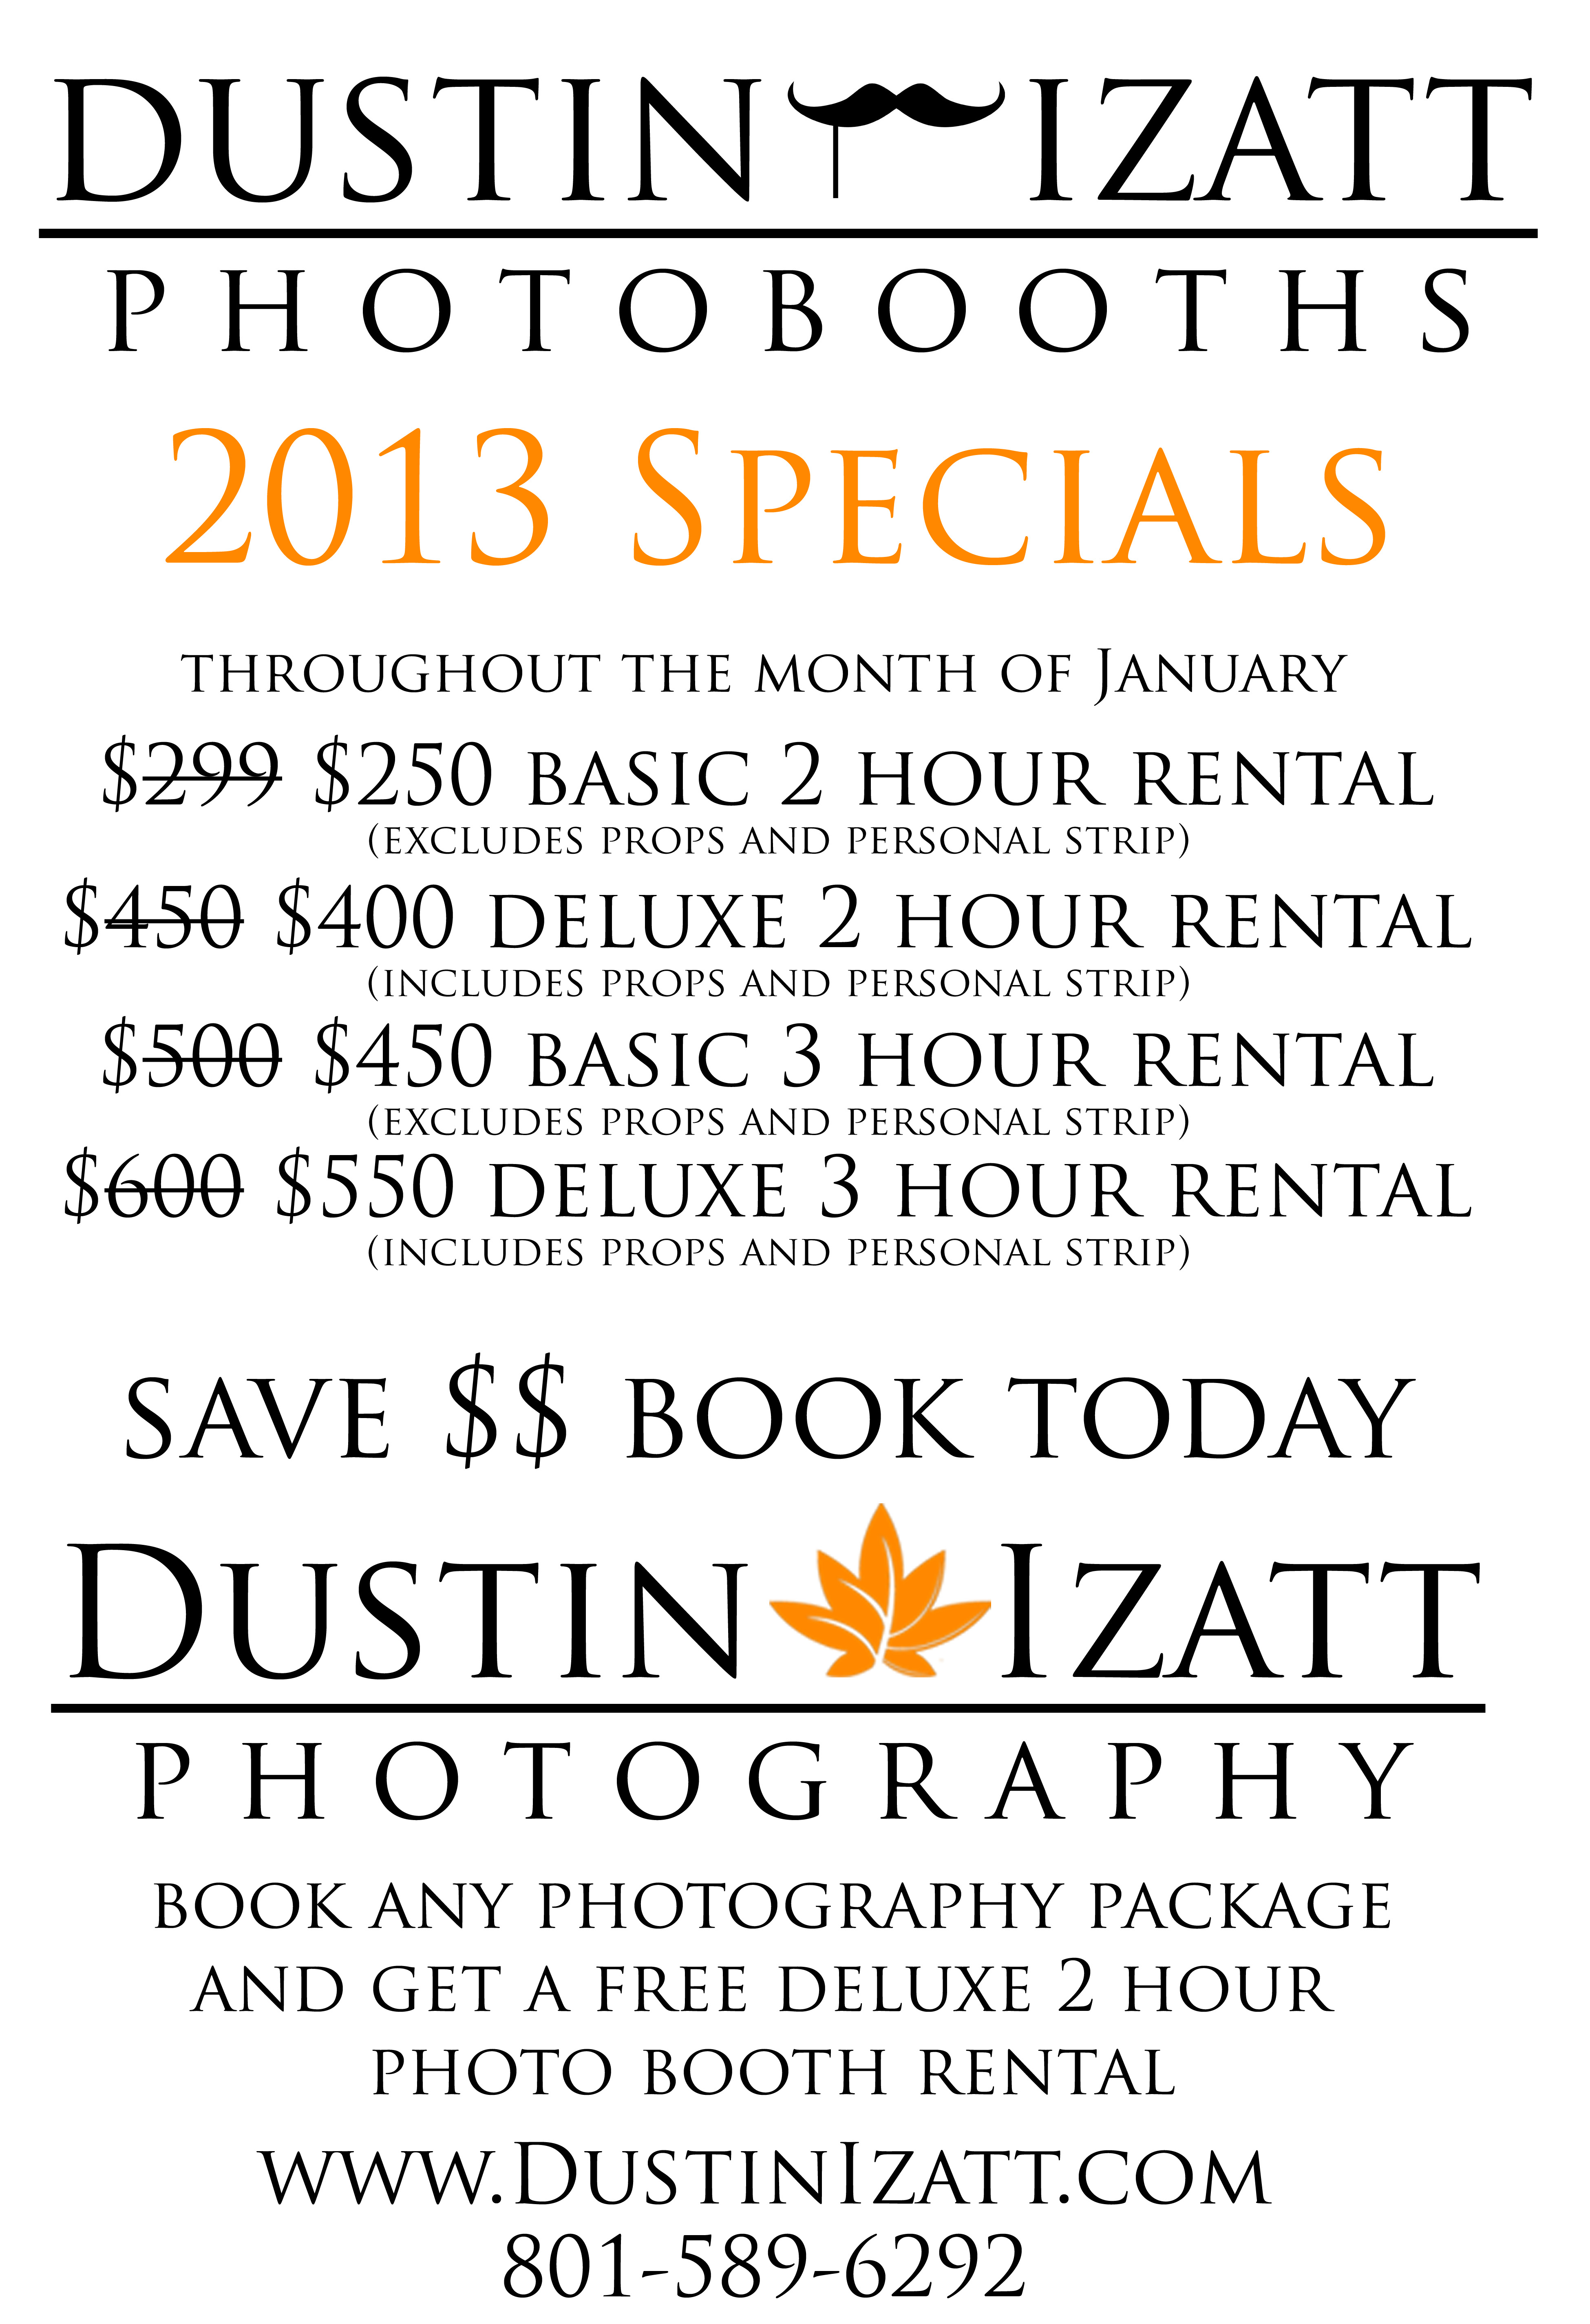 Utah Photo Booth Specials Coupon Low Price Deal by Dustin Izatt Photo Booths